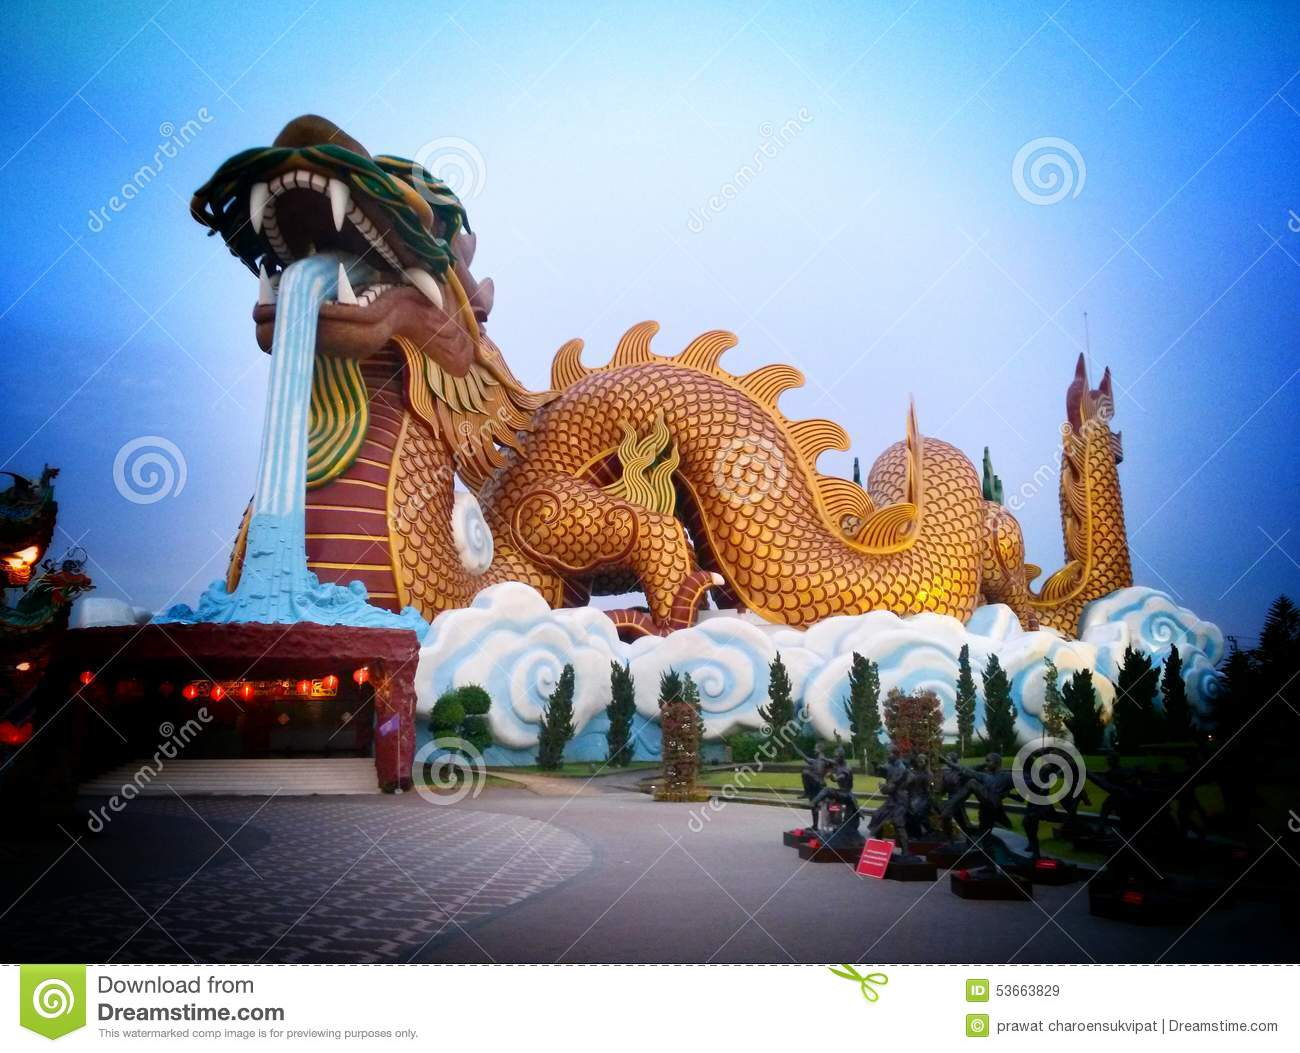 Giant Dragon Statue Chinese Dragon Sculpture Stock Image Image Of Heaven 53663829